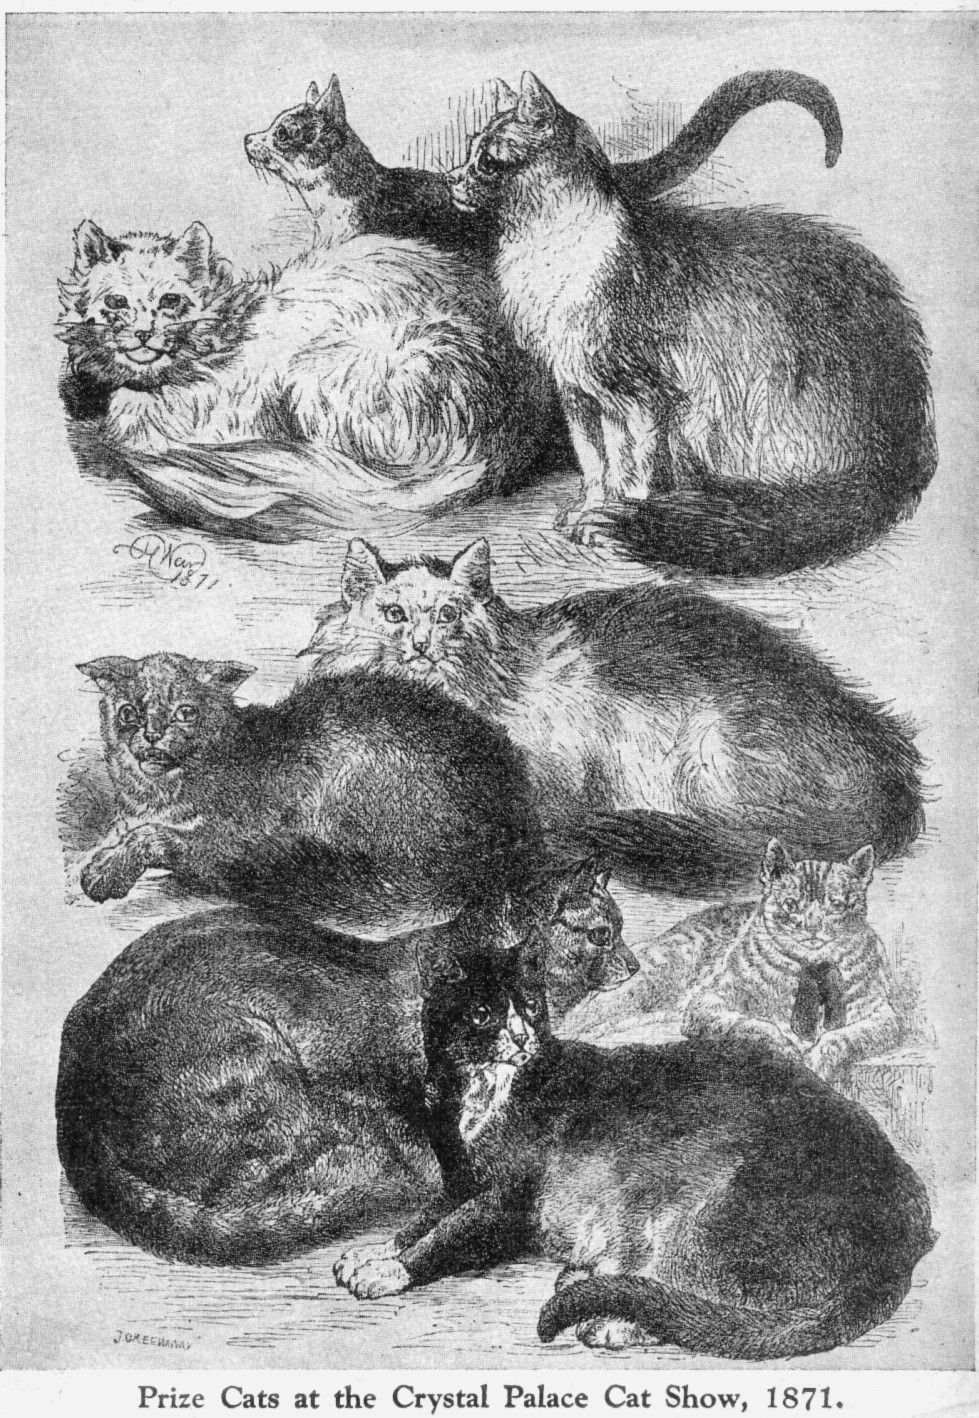 A History of Cat Shows in Britain Cats, Cat art, Vintage cat